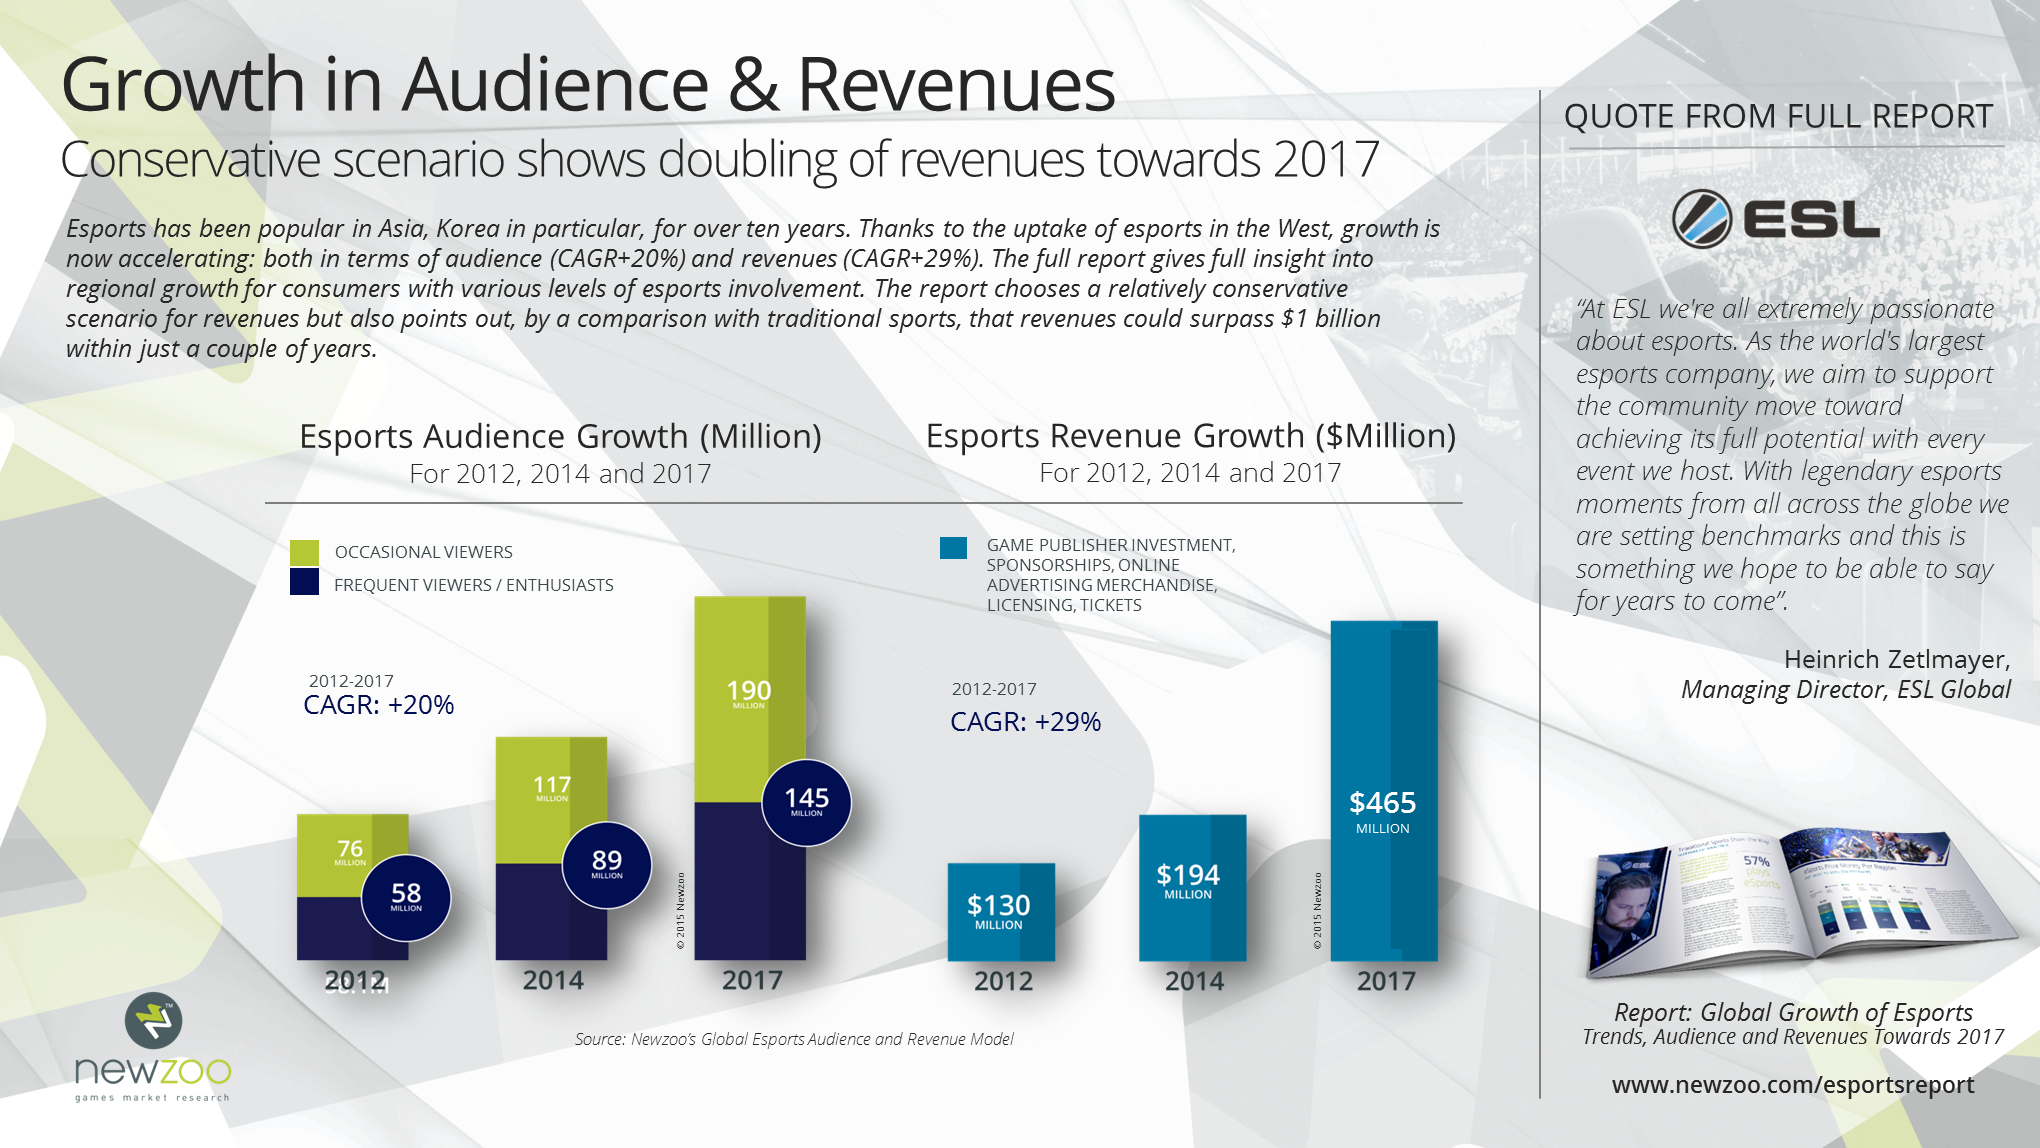 newzoo_preview_esports_report_audience_revenue_growth_v1.png